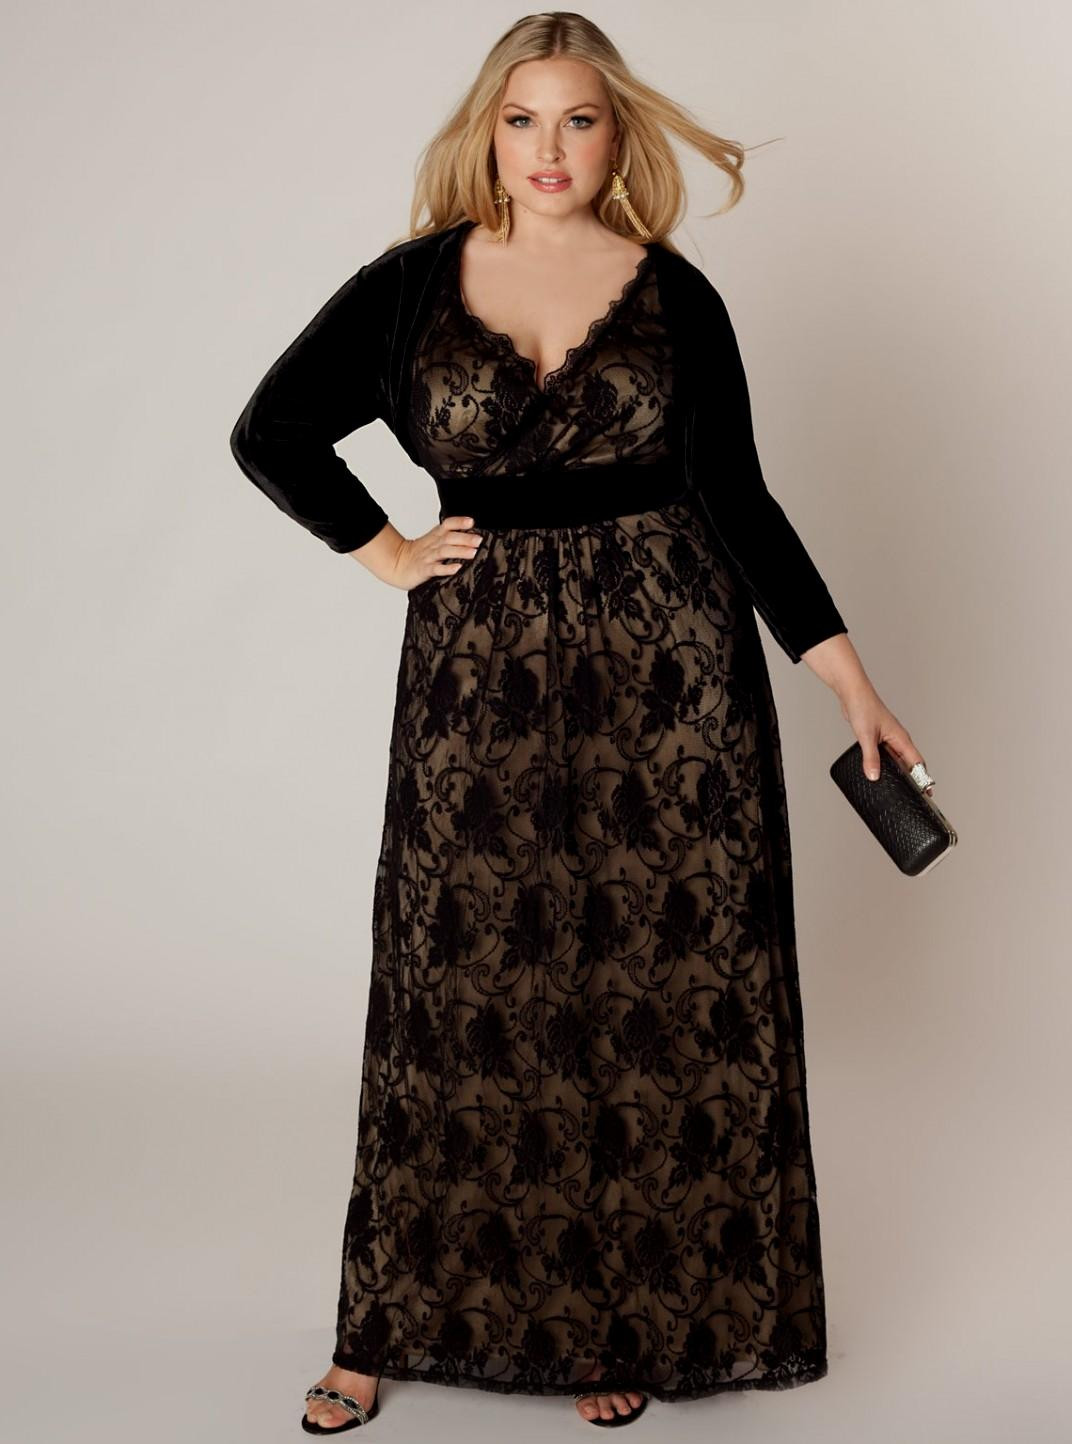 Plus Size Crochet Lovely Plus Size Crochet Dress Make You Chic with 8 Style Picture Of Gorgeous 50 Pictures Plus Size Crochet